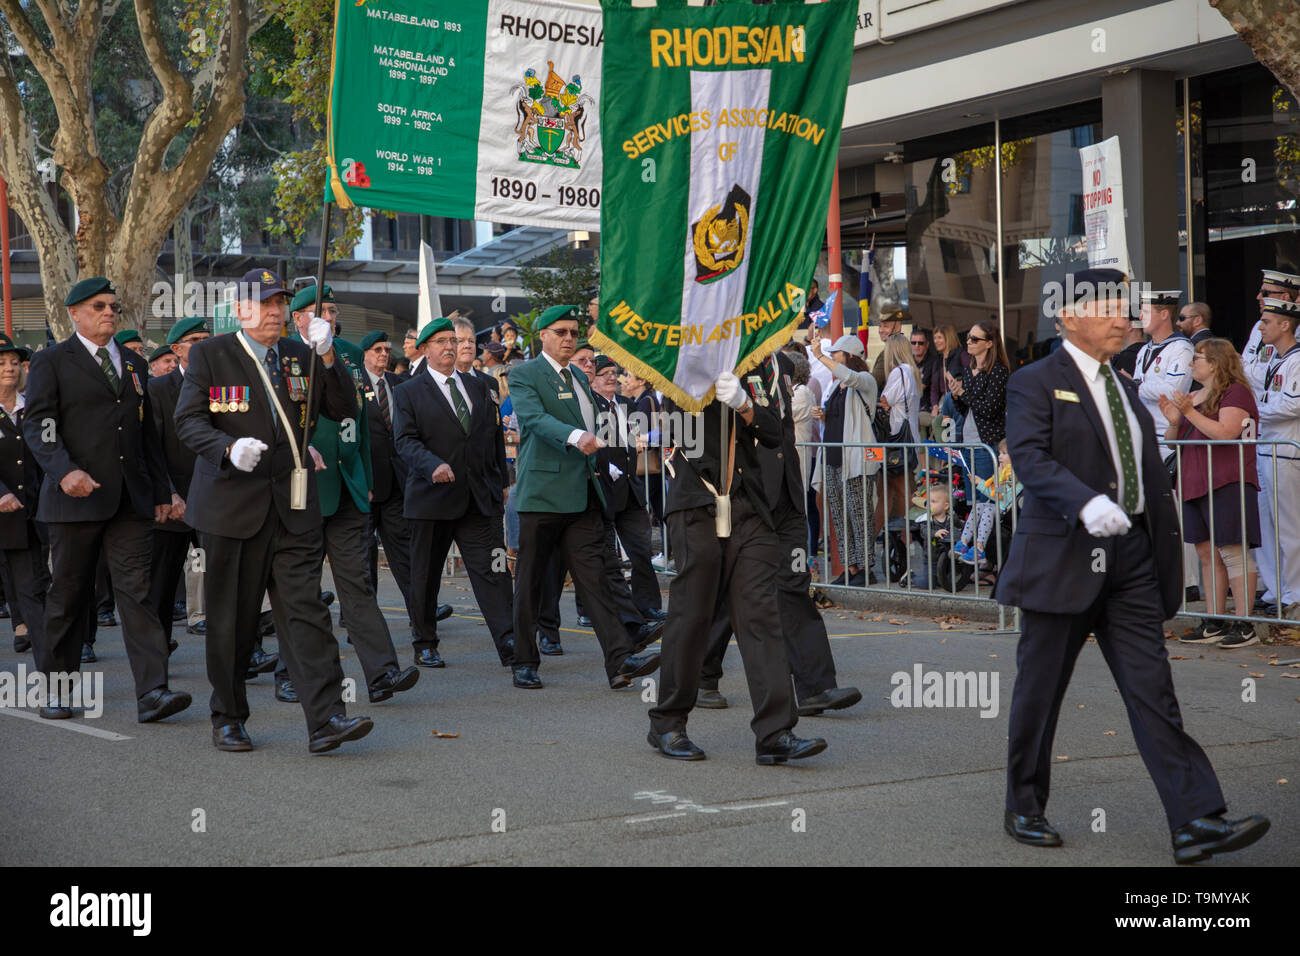 Perth, Australia. 25th April 2019. Anzac Parade in Perth WA. Australians all over the country remember those service men and women who died in conflict for their country. The day starts with a dawn service followed by an Anzac Day Parade all over the country such as here in Perth, WA. Younger participants in the parade wear the medals of their family members. Credit: Joe Kuis / Alamy - Stock Image